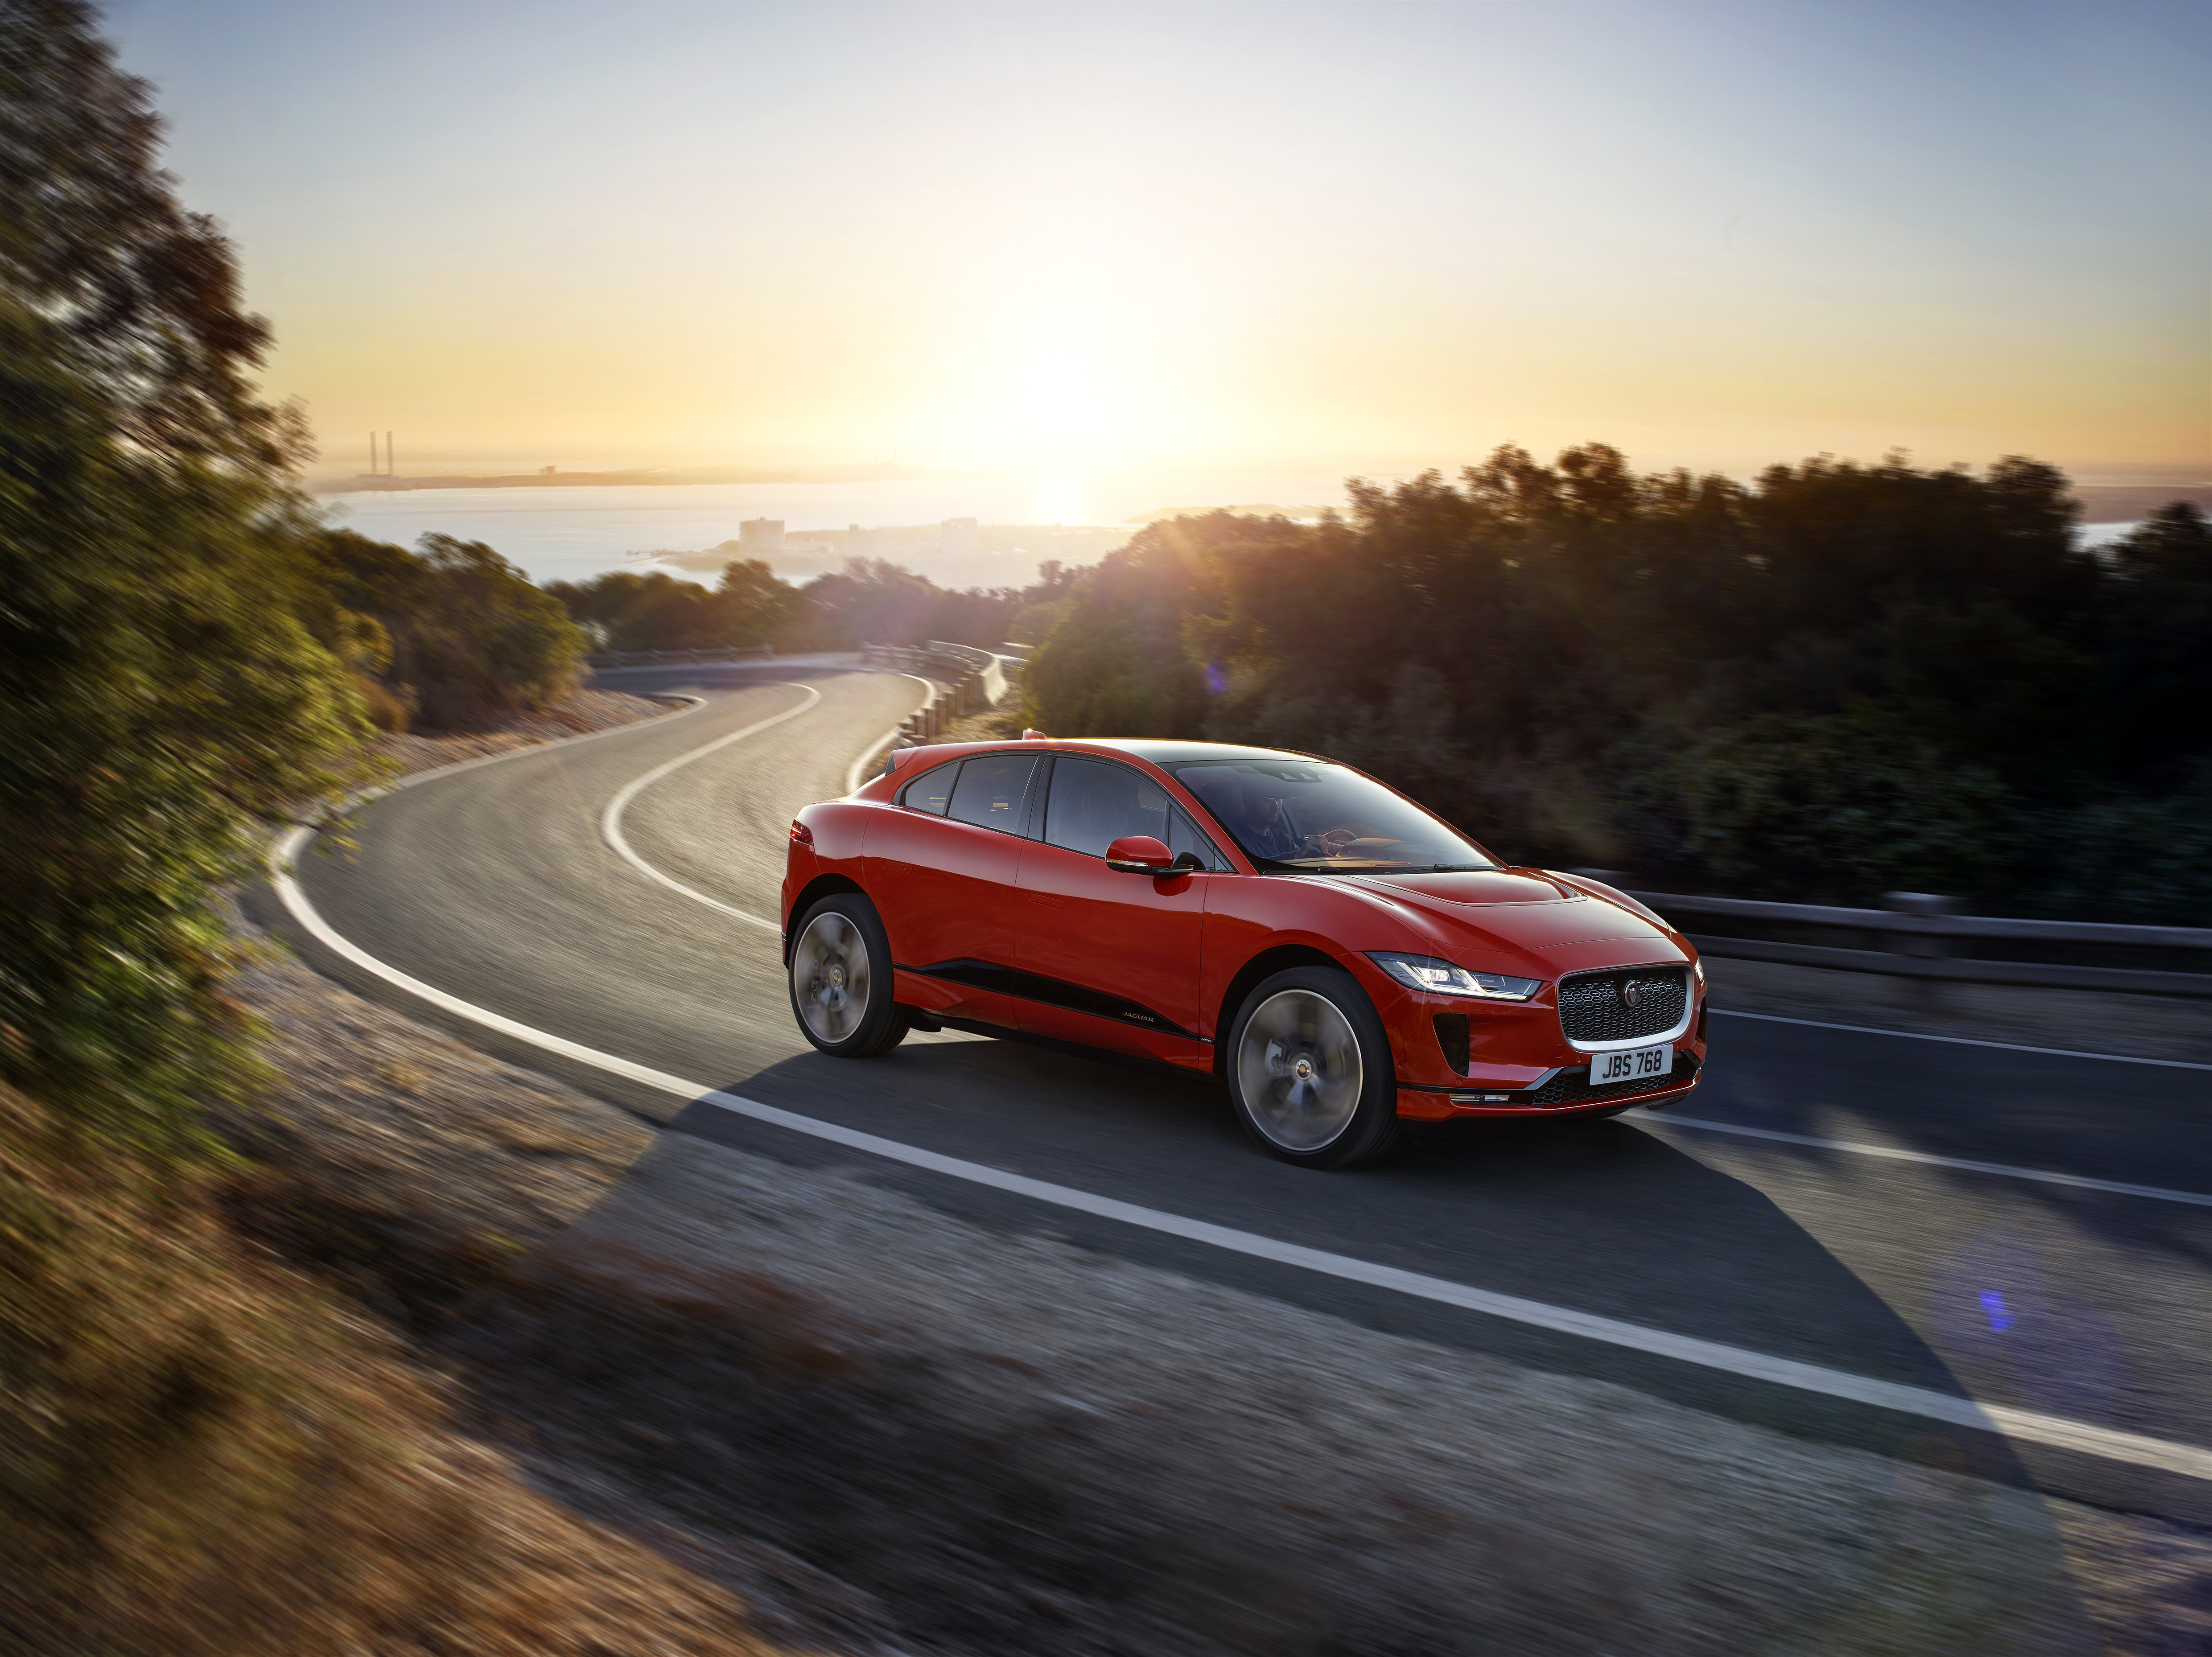 Jaguar Has Finally Fully Revealed The Official I PACE All Electric SUV, A  Vehicle With Just Under 240 Miles Of Range And A 0 To 60 Mph Time Of Under  Five ...